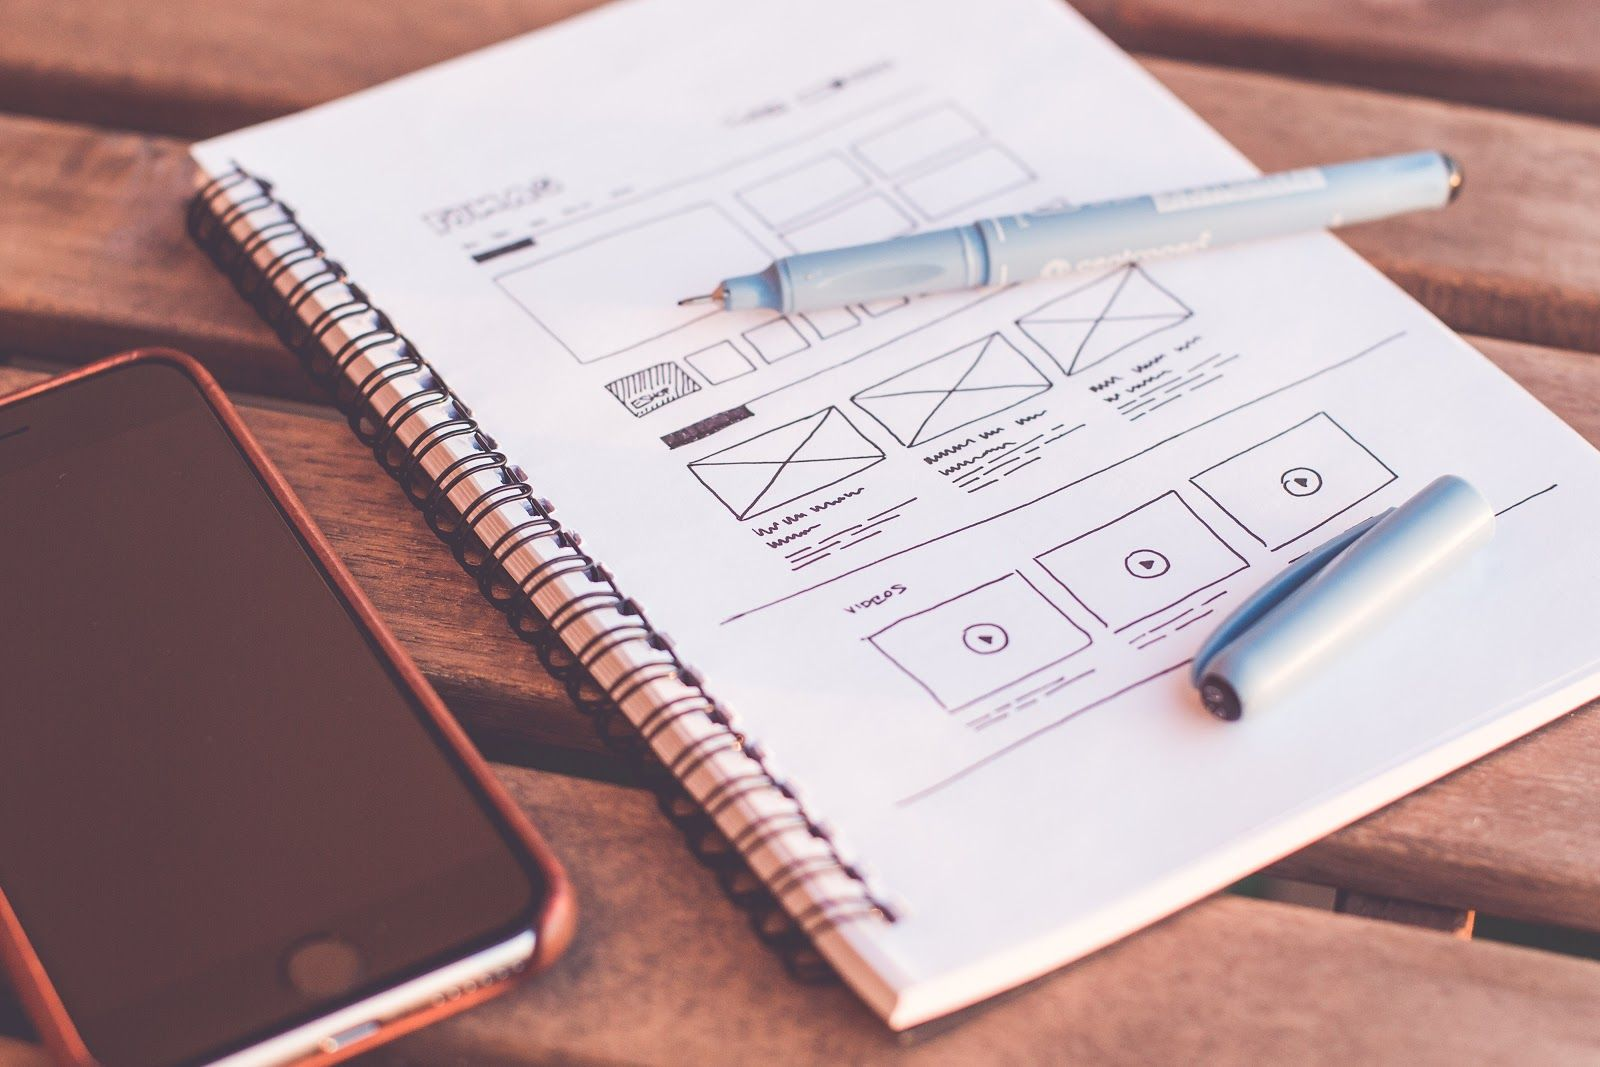 best UX/UI tools balance pleasure and functionality